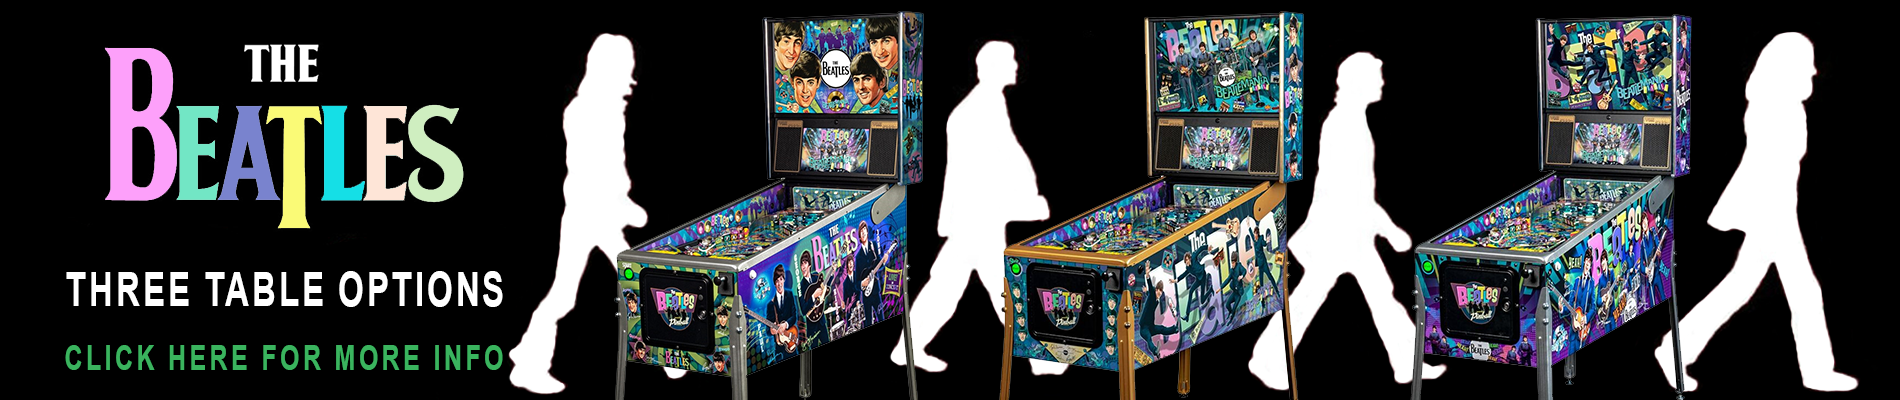 The Beatles Pinball by Stern Pinball